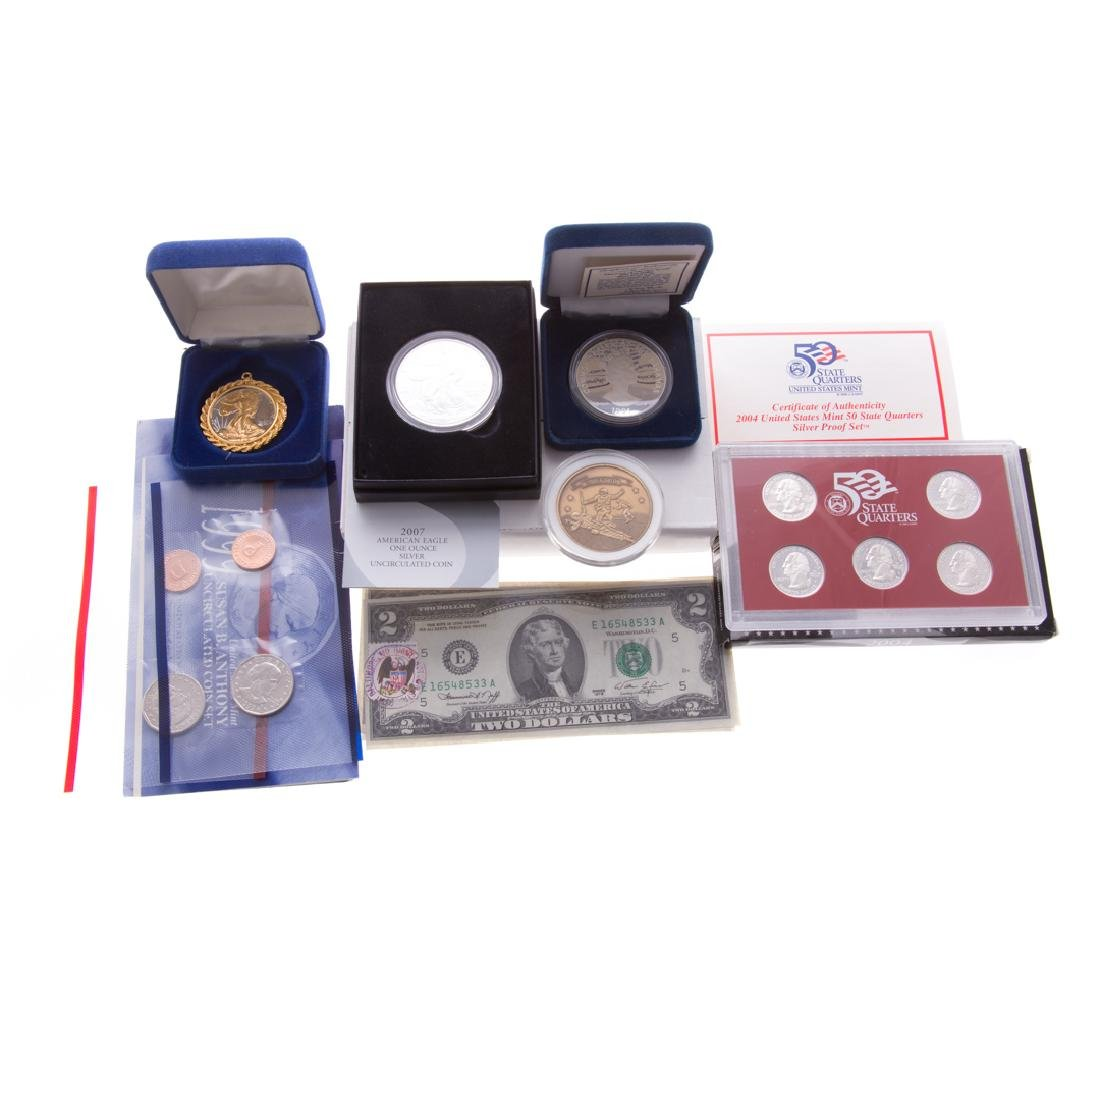 [US] Miscellaneous Coins and silver